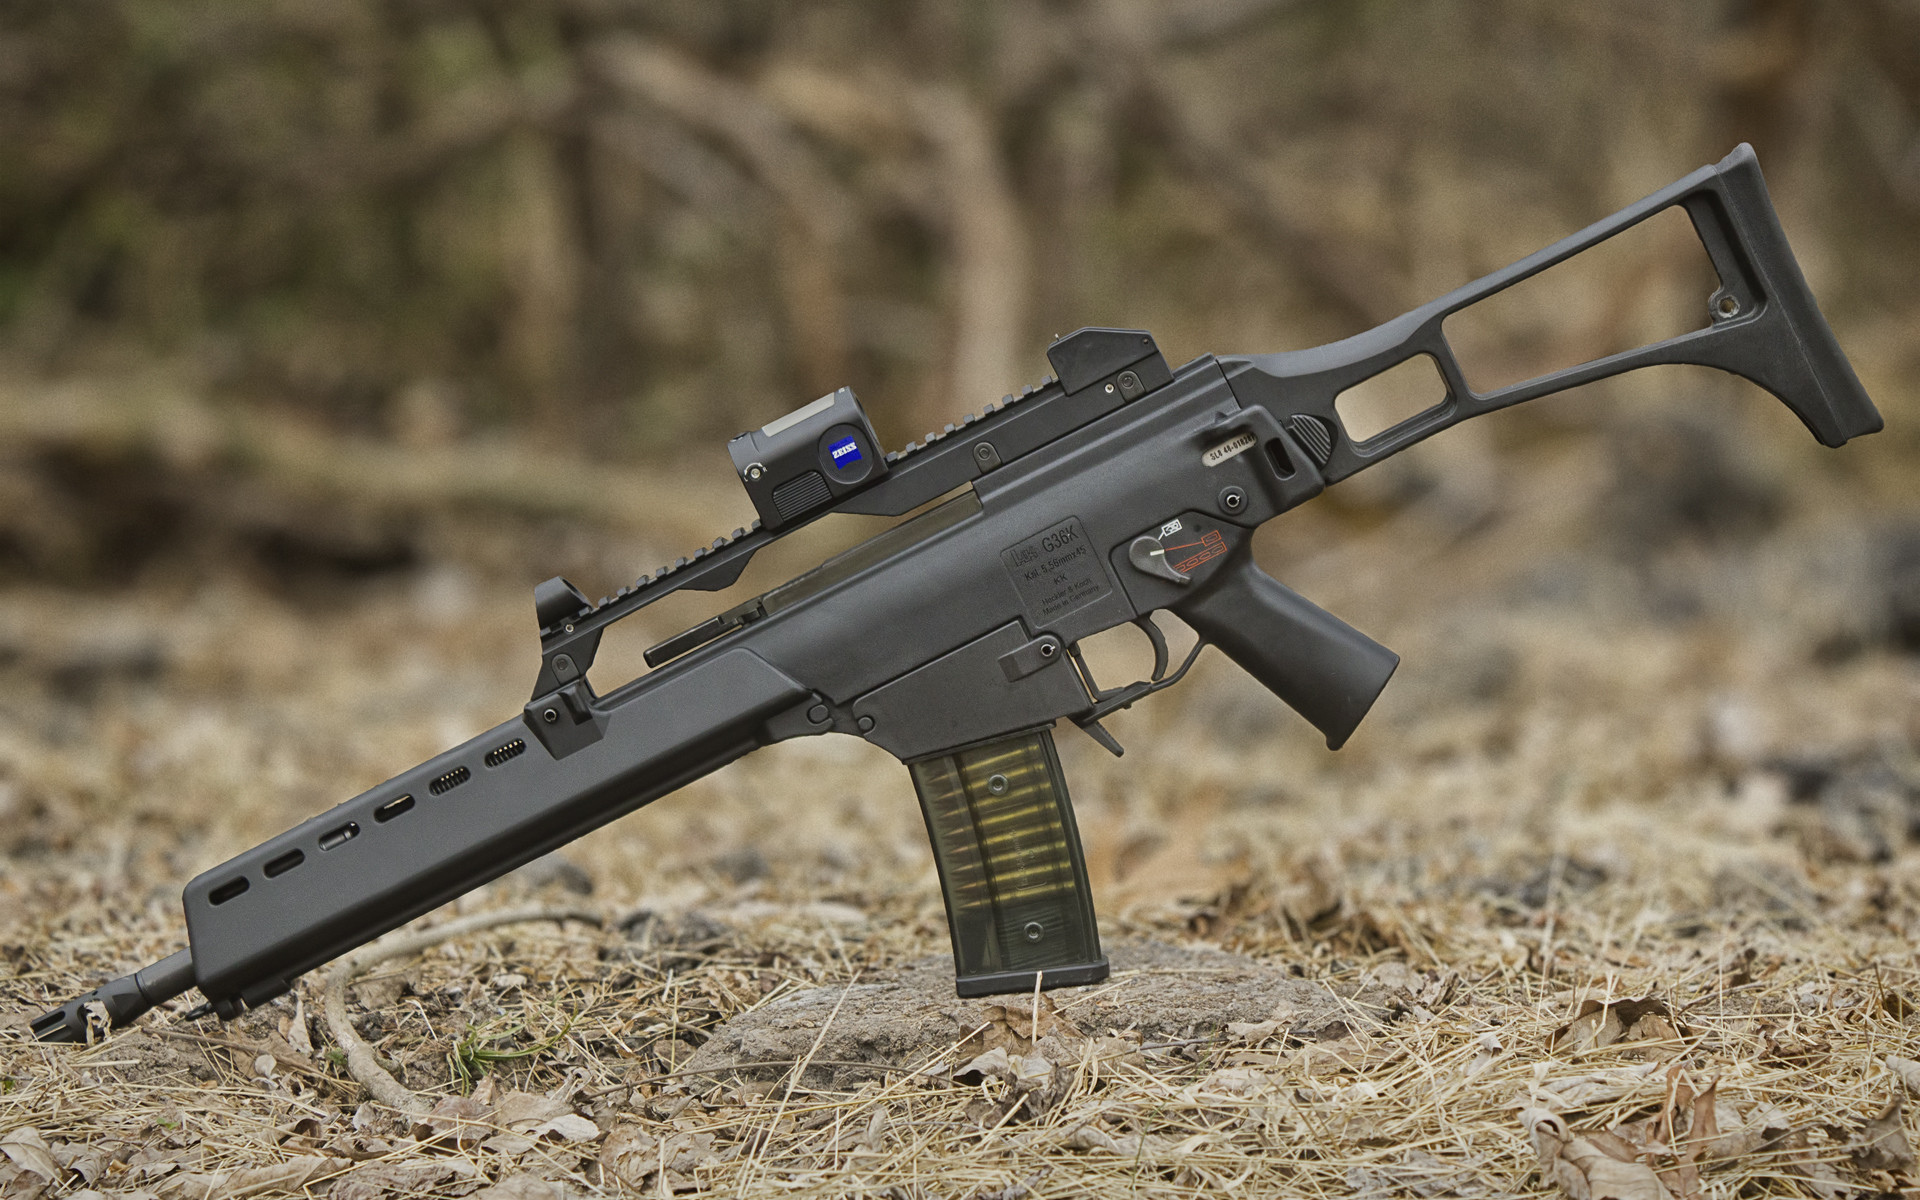 Heckler & Koch G36 rifle